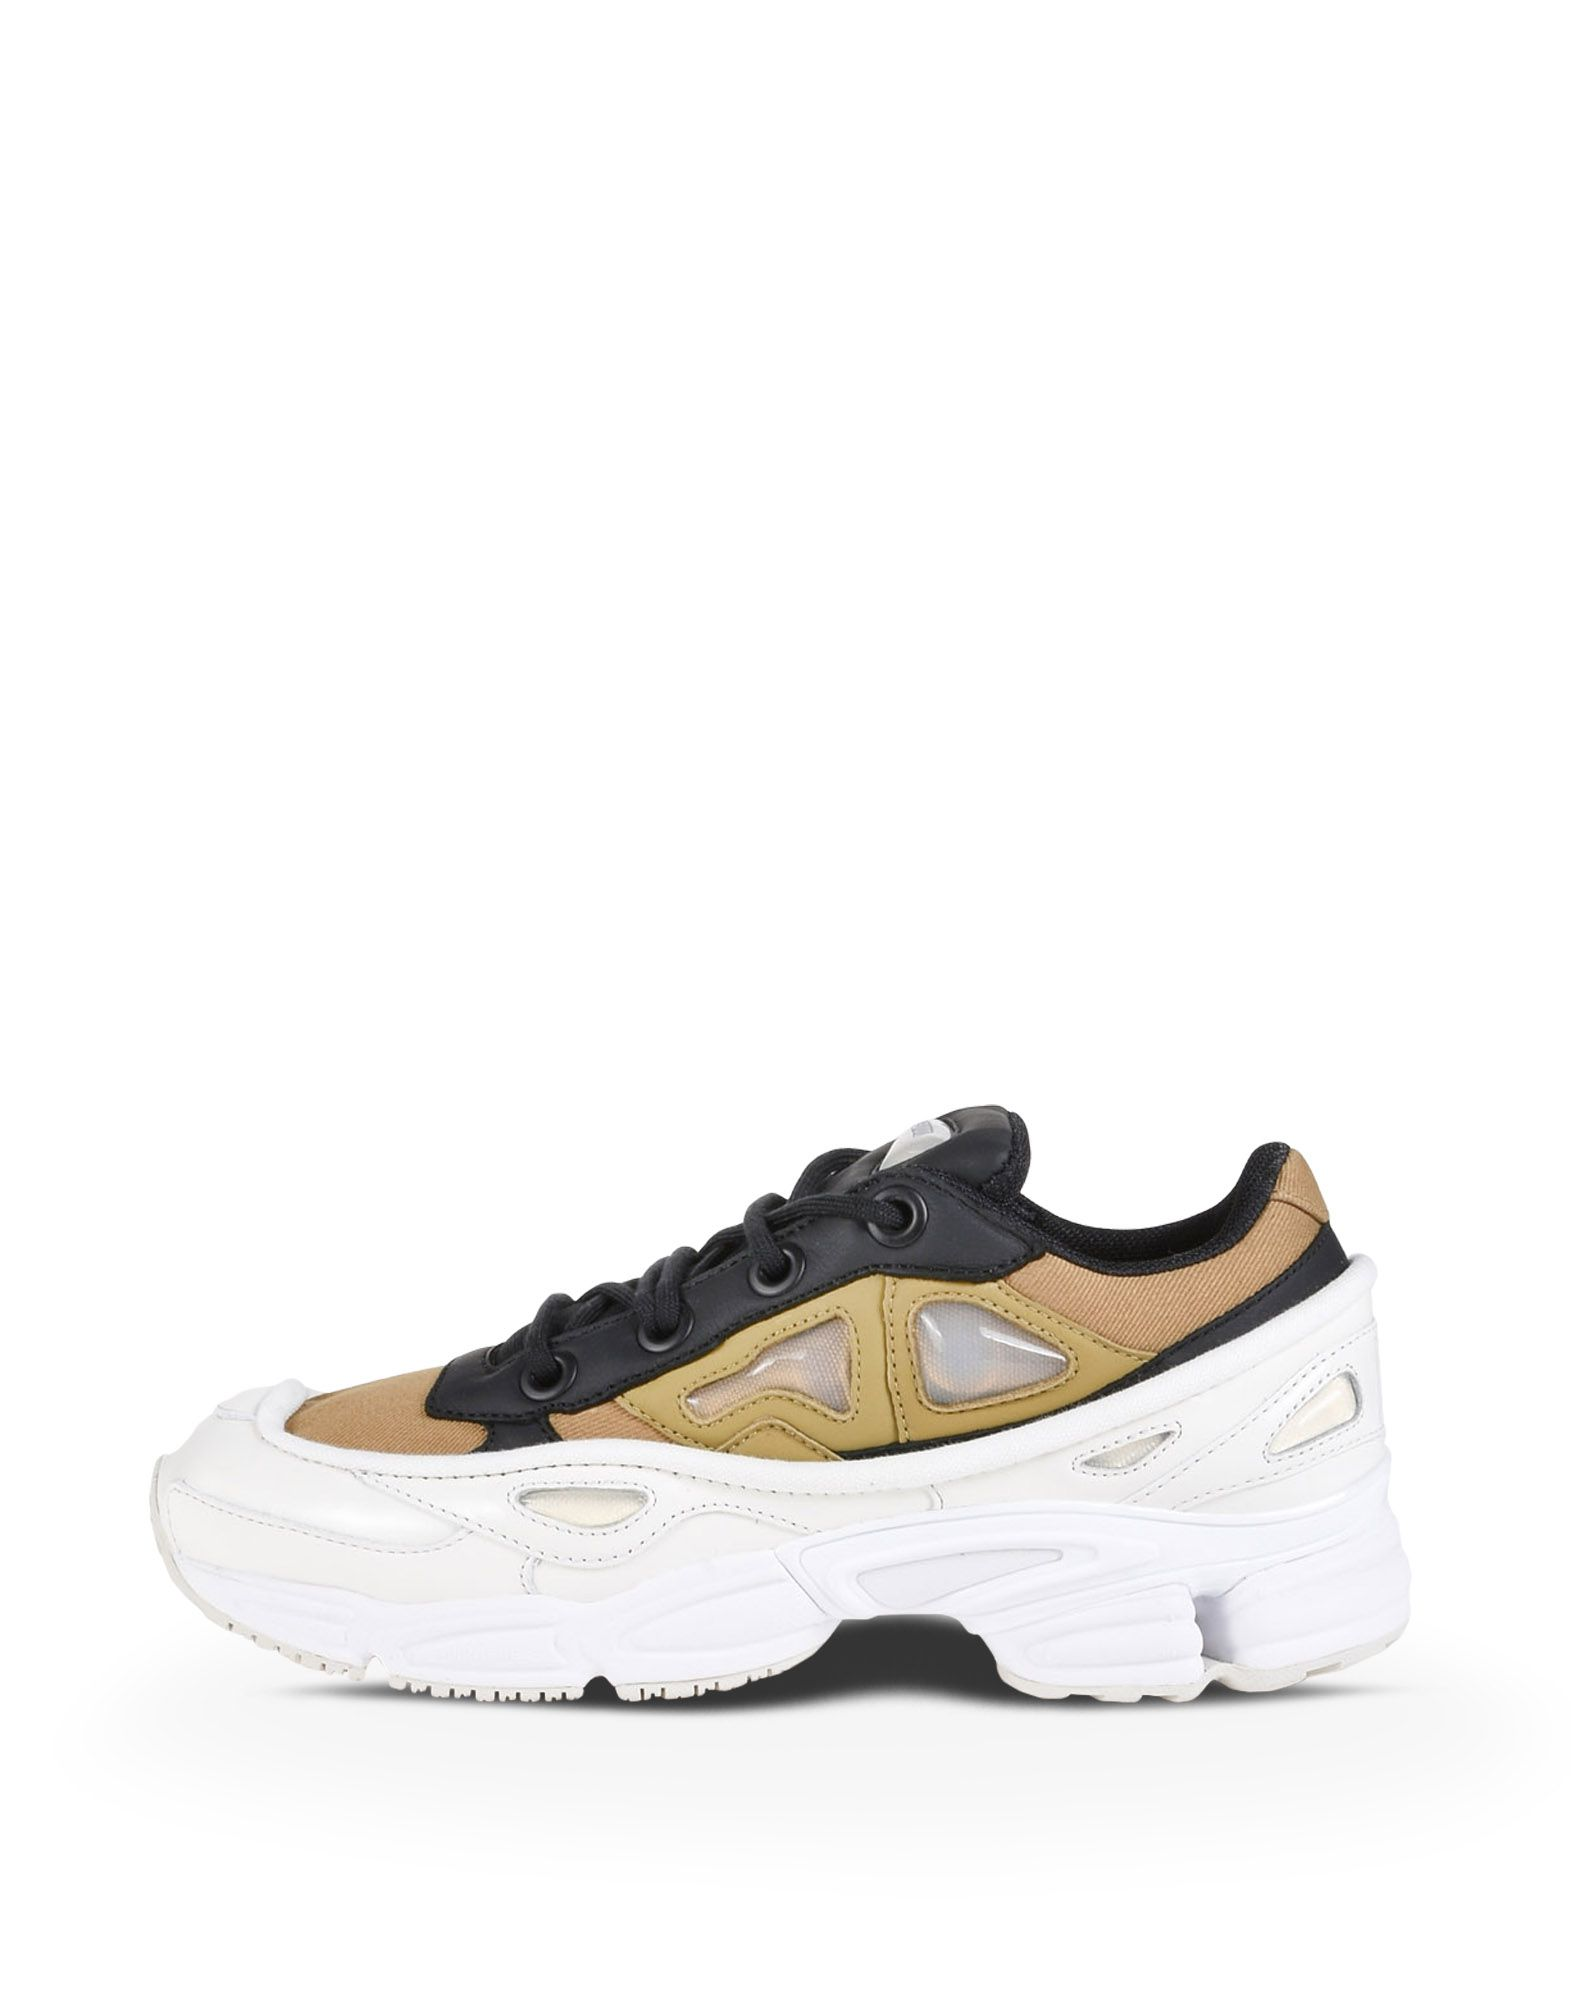 raf simons ozweego iii trainers adidas y 3 official store. Black Bedroom Furniture Sets. Home Design Ideas